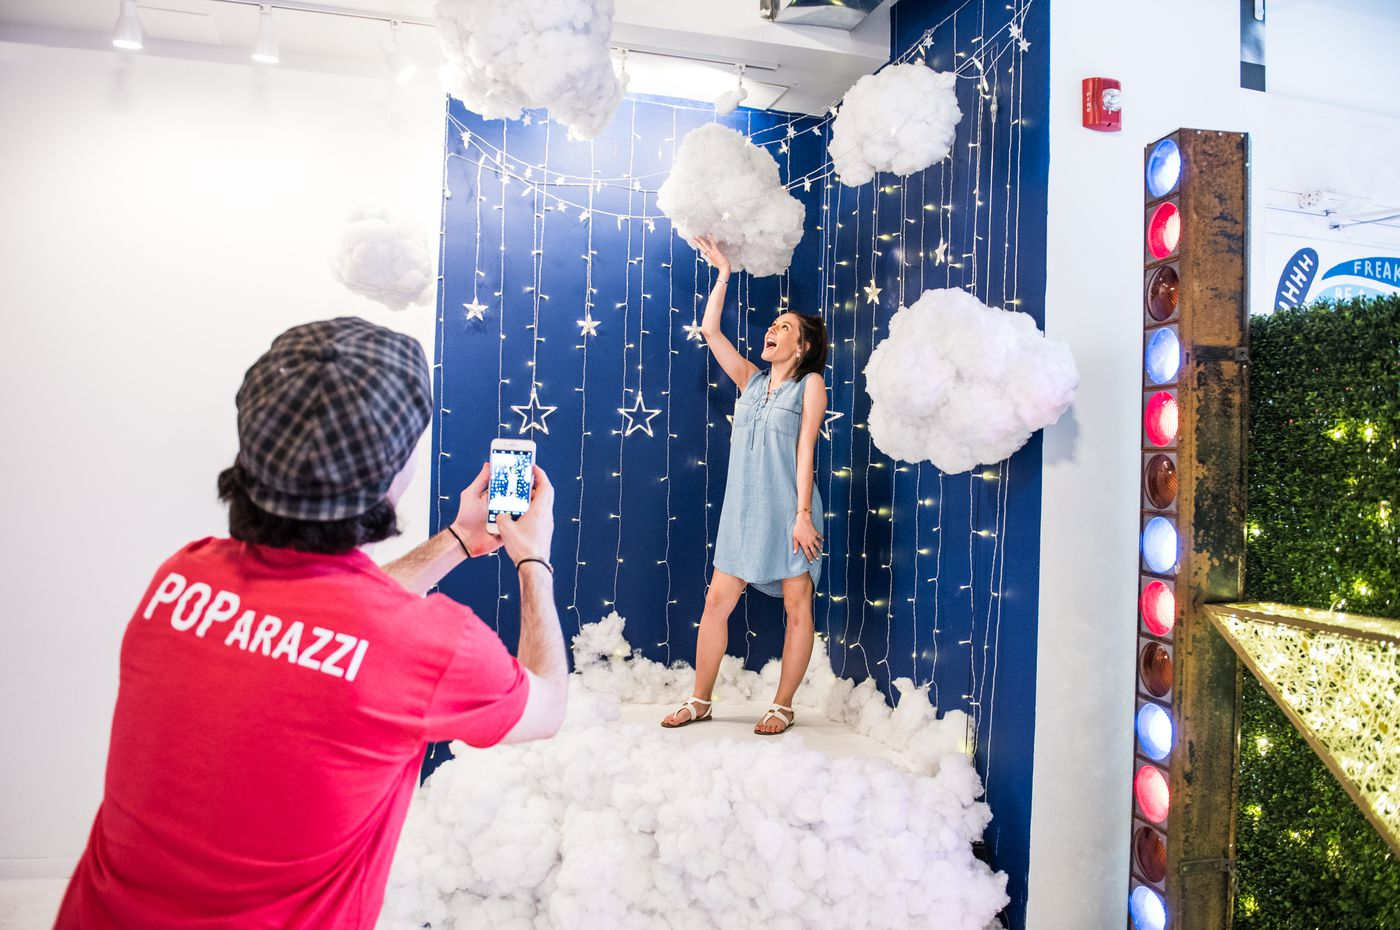 A new popup exhibition is now open in Philly, designed with the Instagrammer in mind